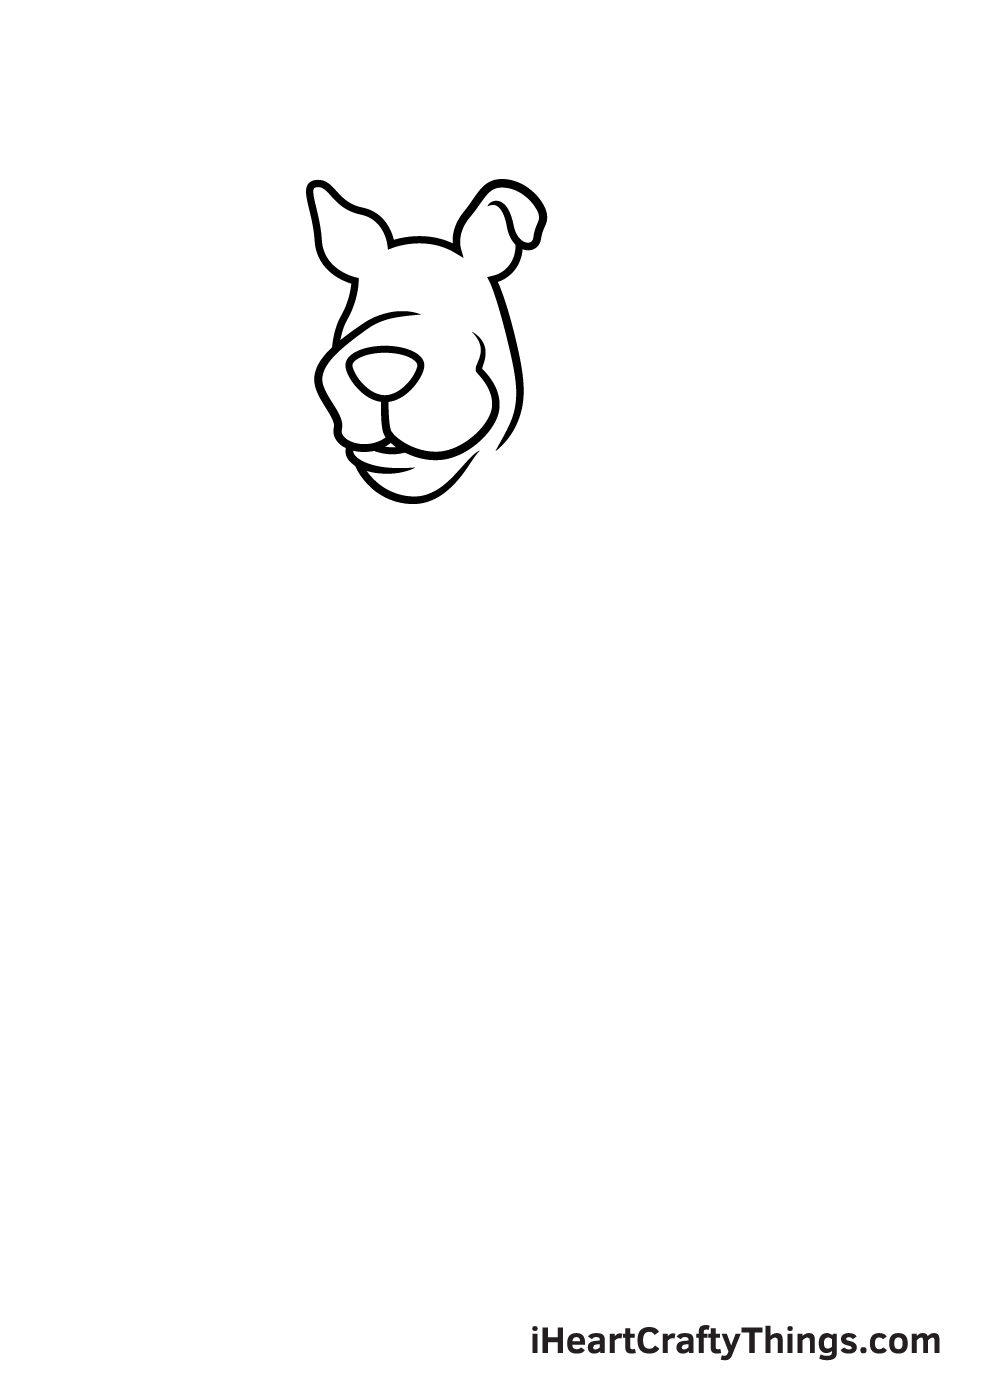 drawing Scooby-Doo step 3